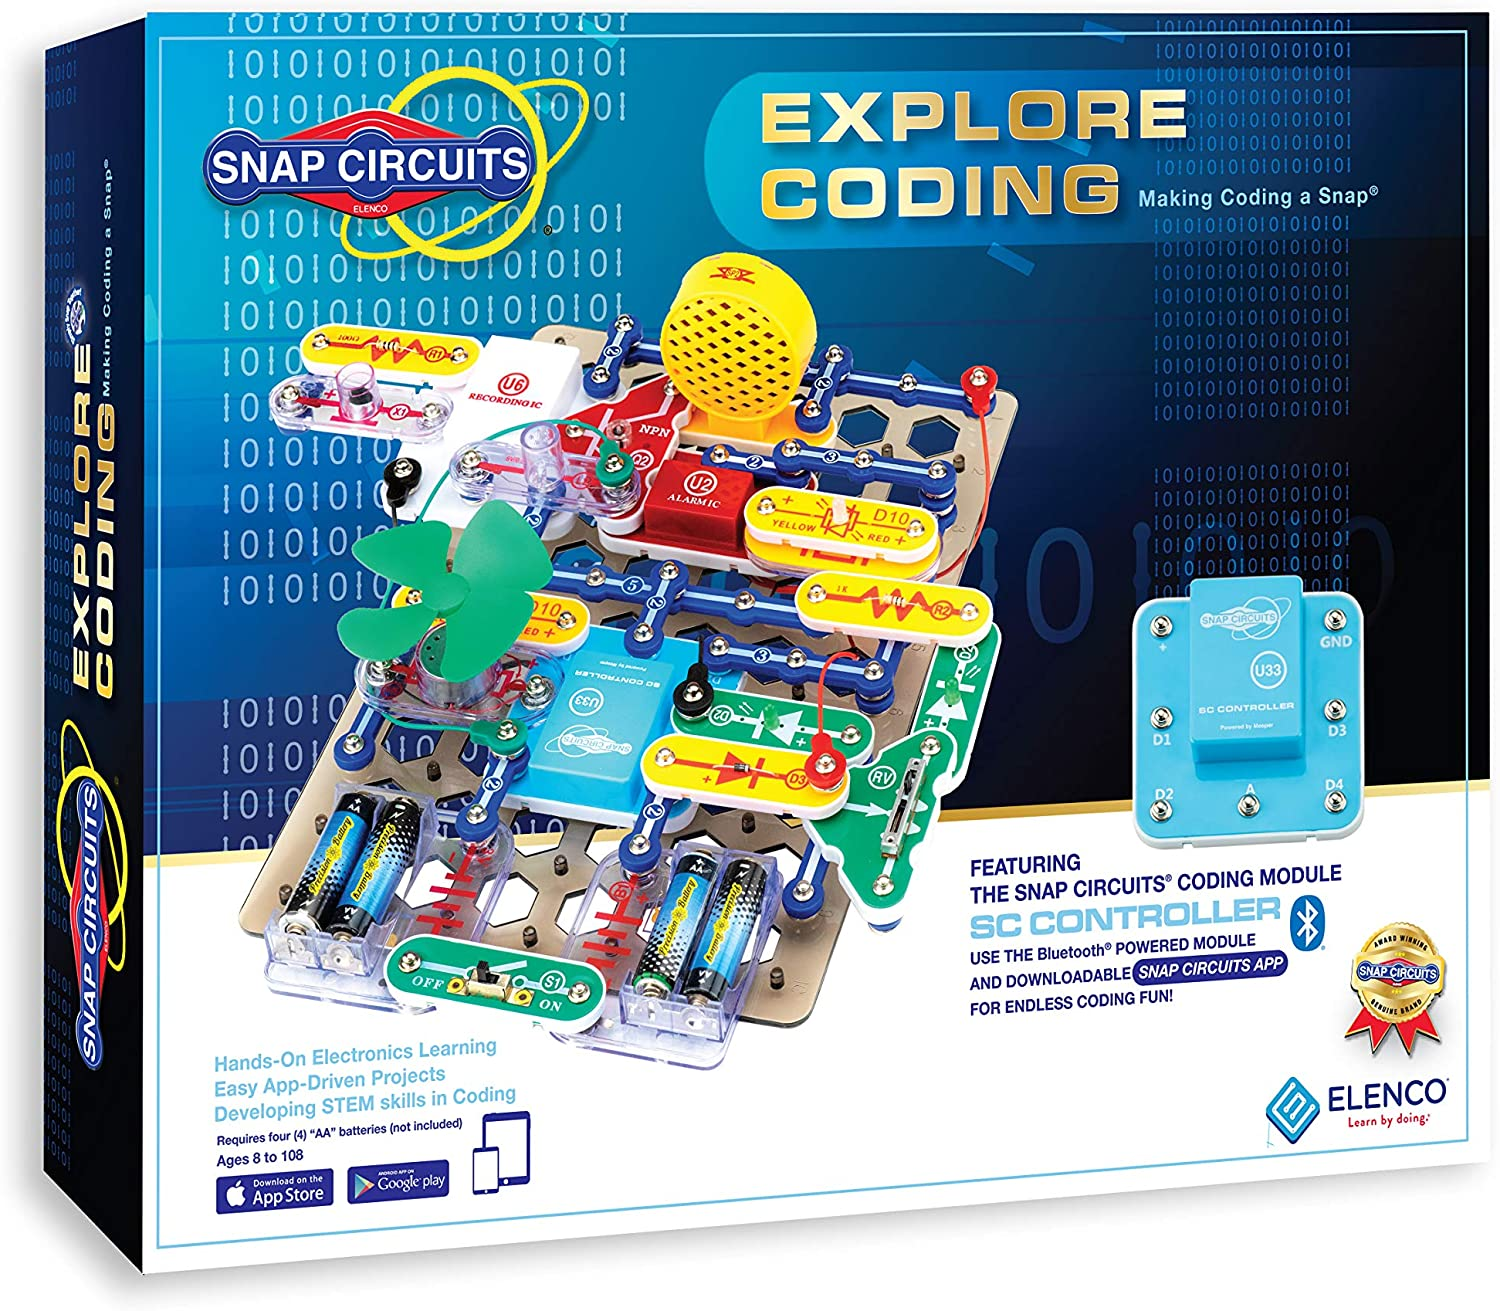 Snap Circuits Explore Coding Kit package